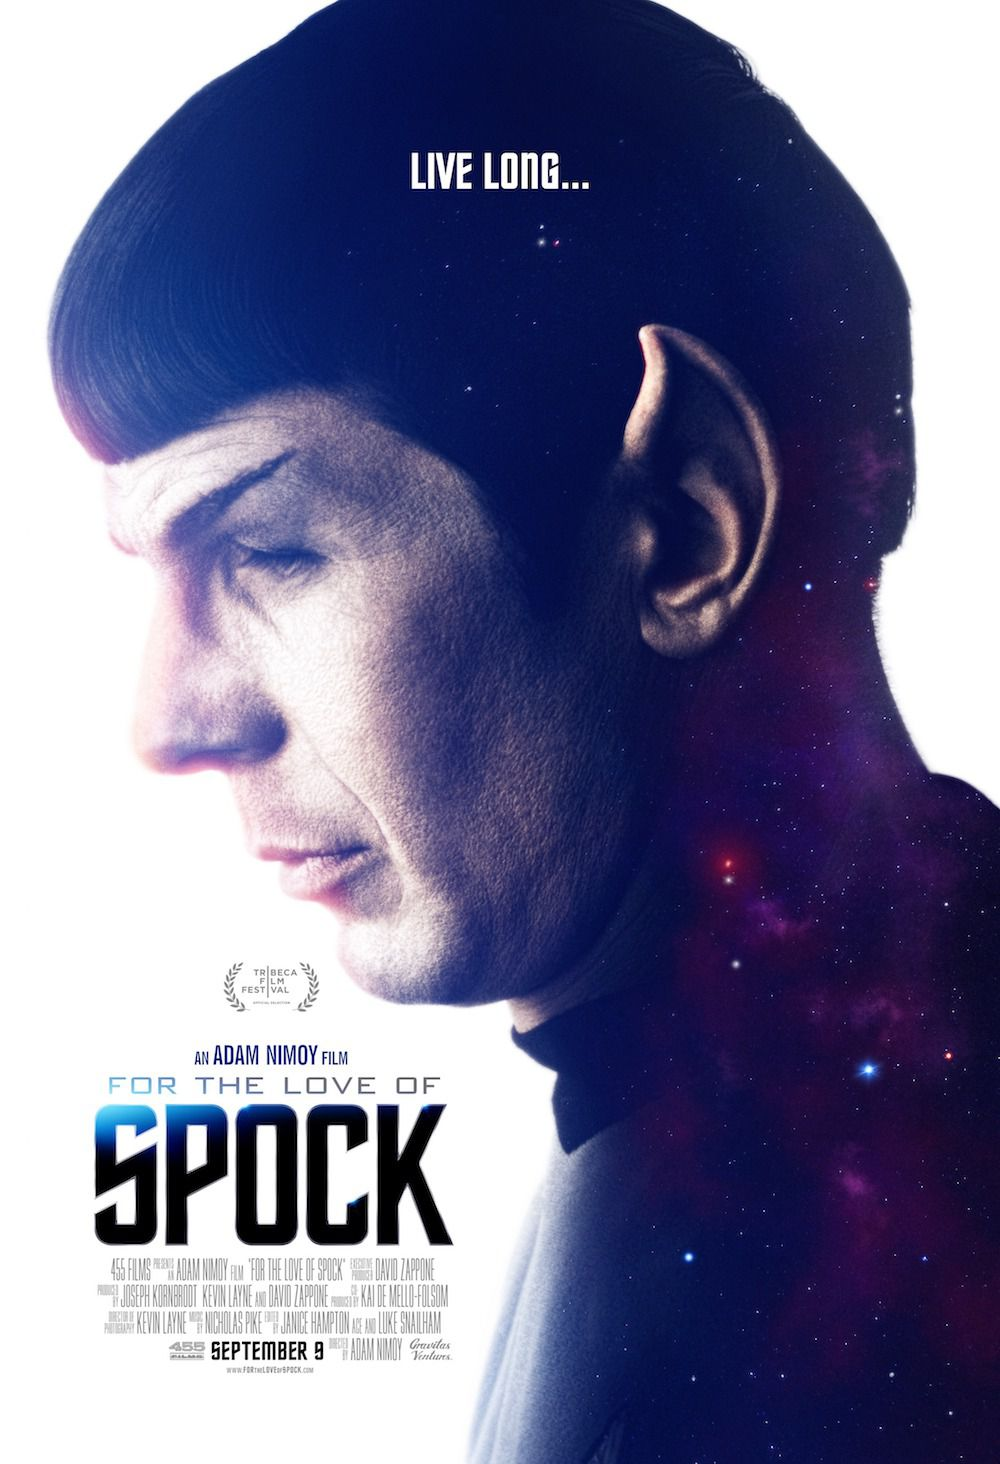 For the Love of Spock - Leonard Nimoy docu film poster